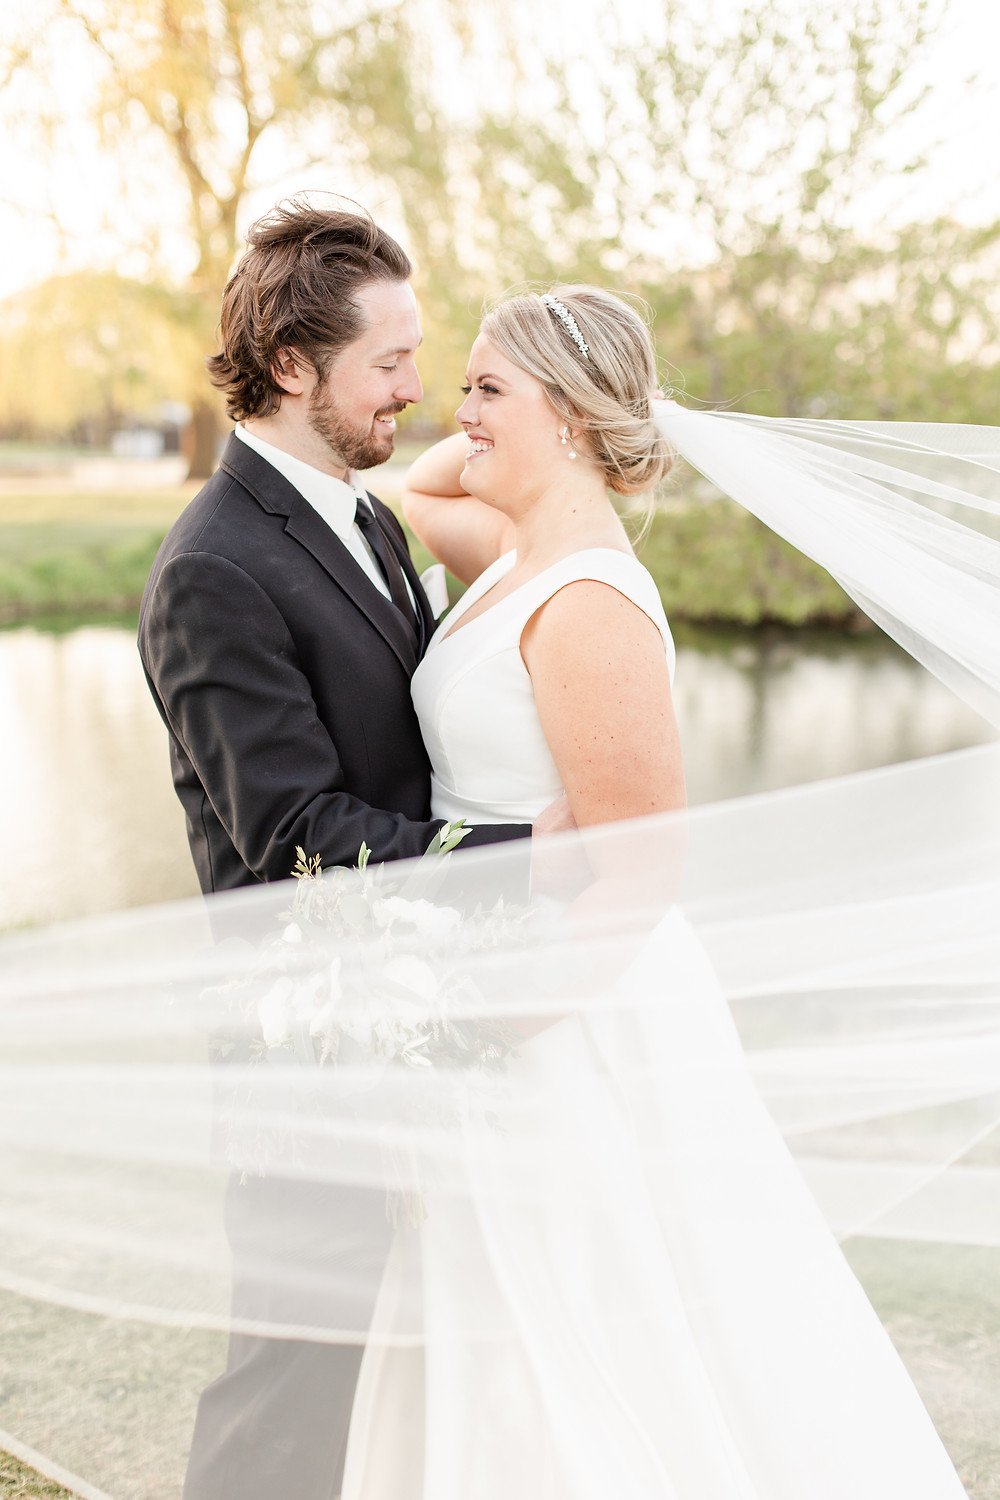 Josh and Andrea wedding photography husband and wife photographer team michigan Black Barn Wedding Venue rives junction spring bride and groom veil